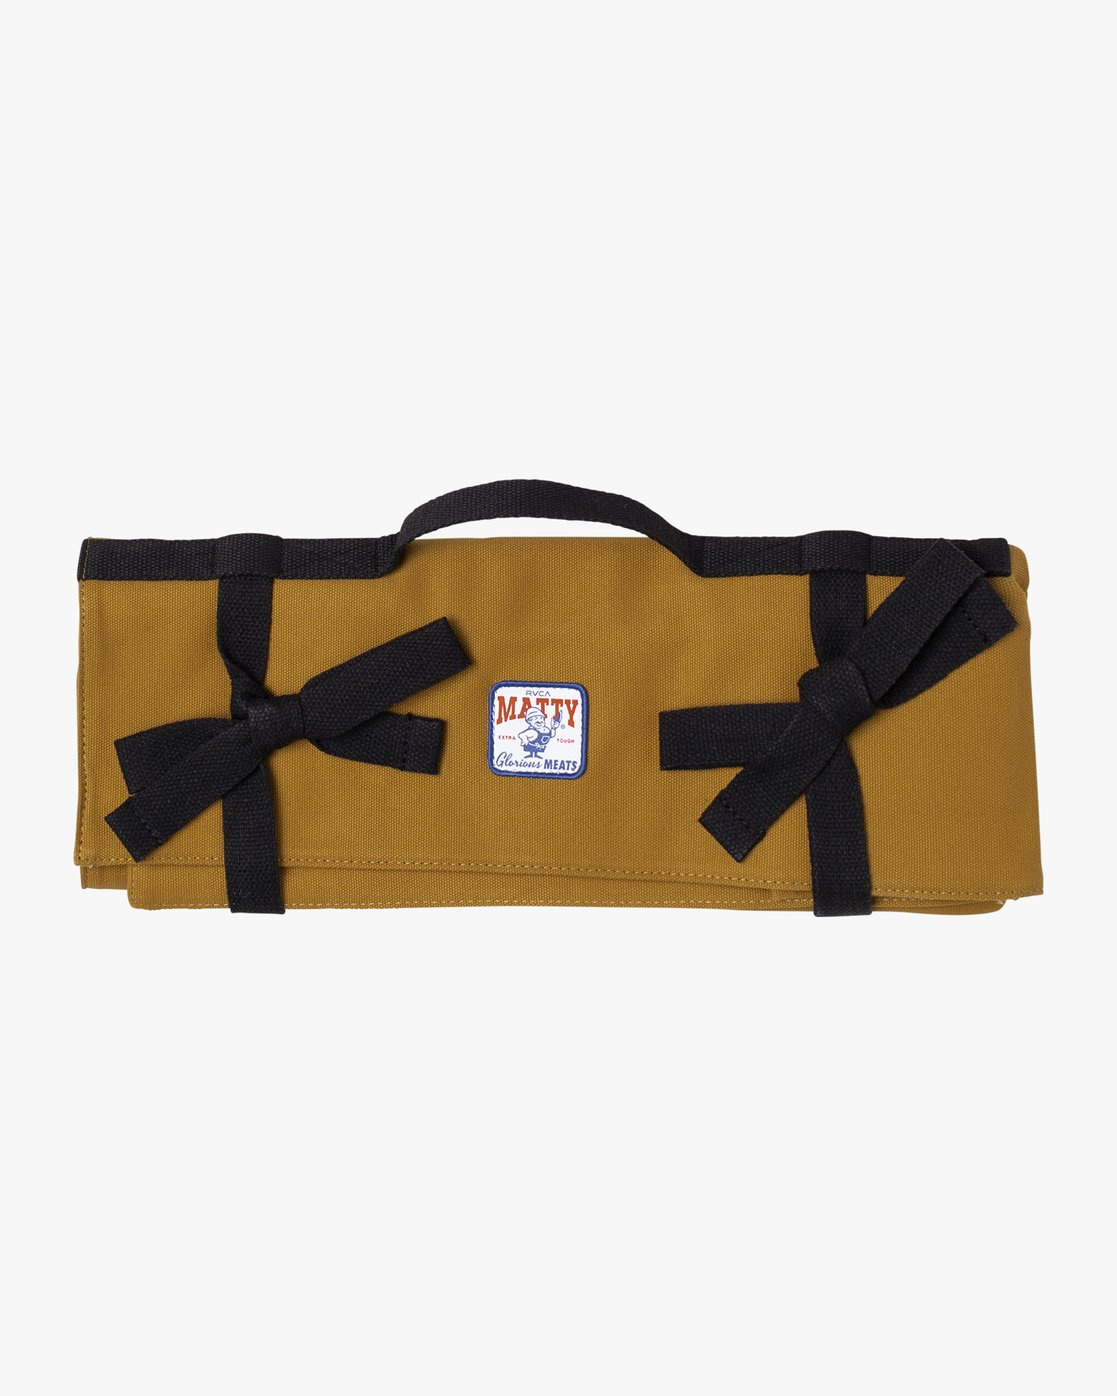 0 MATTYS KNIFE ROLL Brown MAMCWRMK RVCA